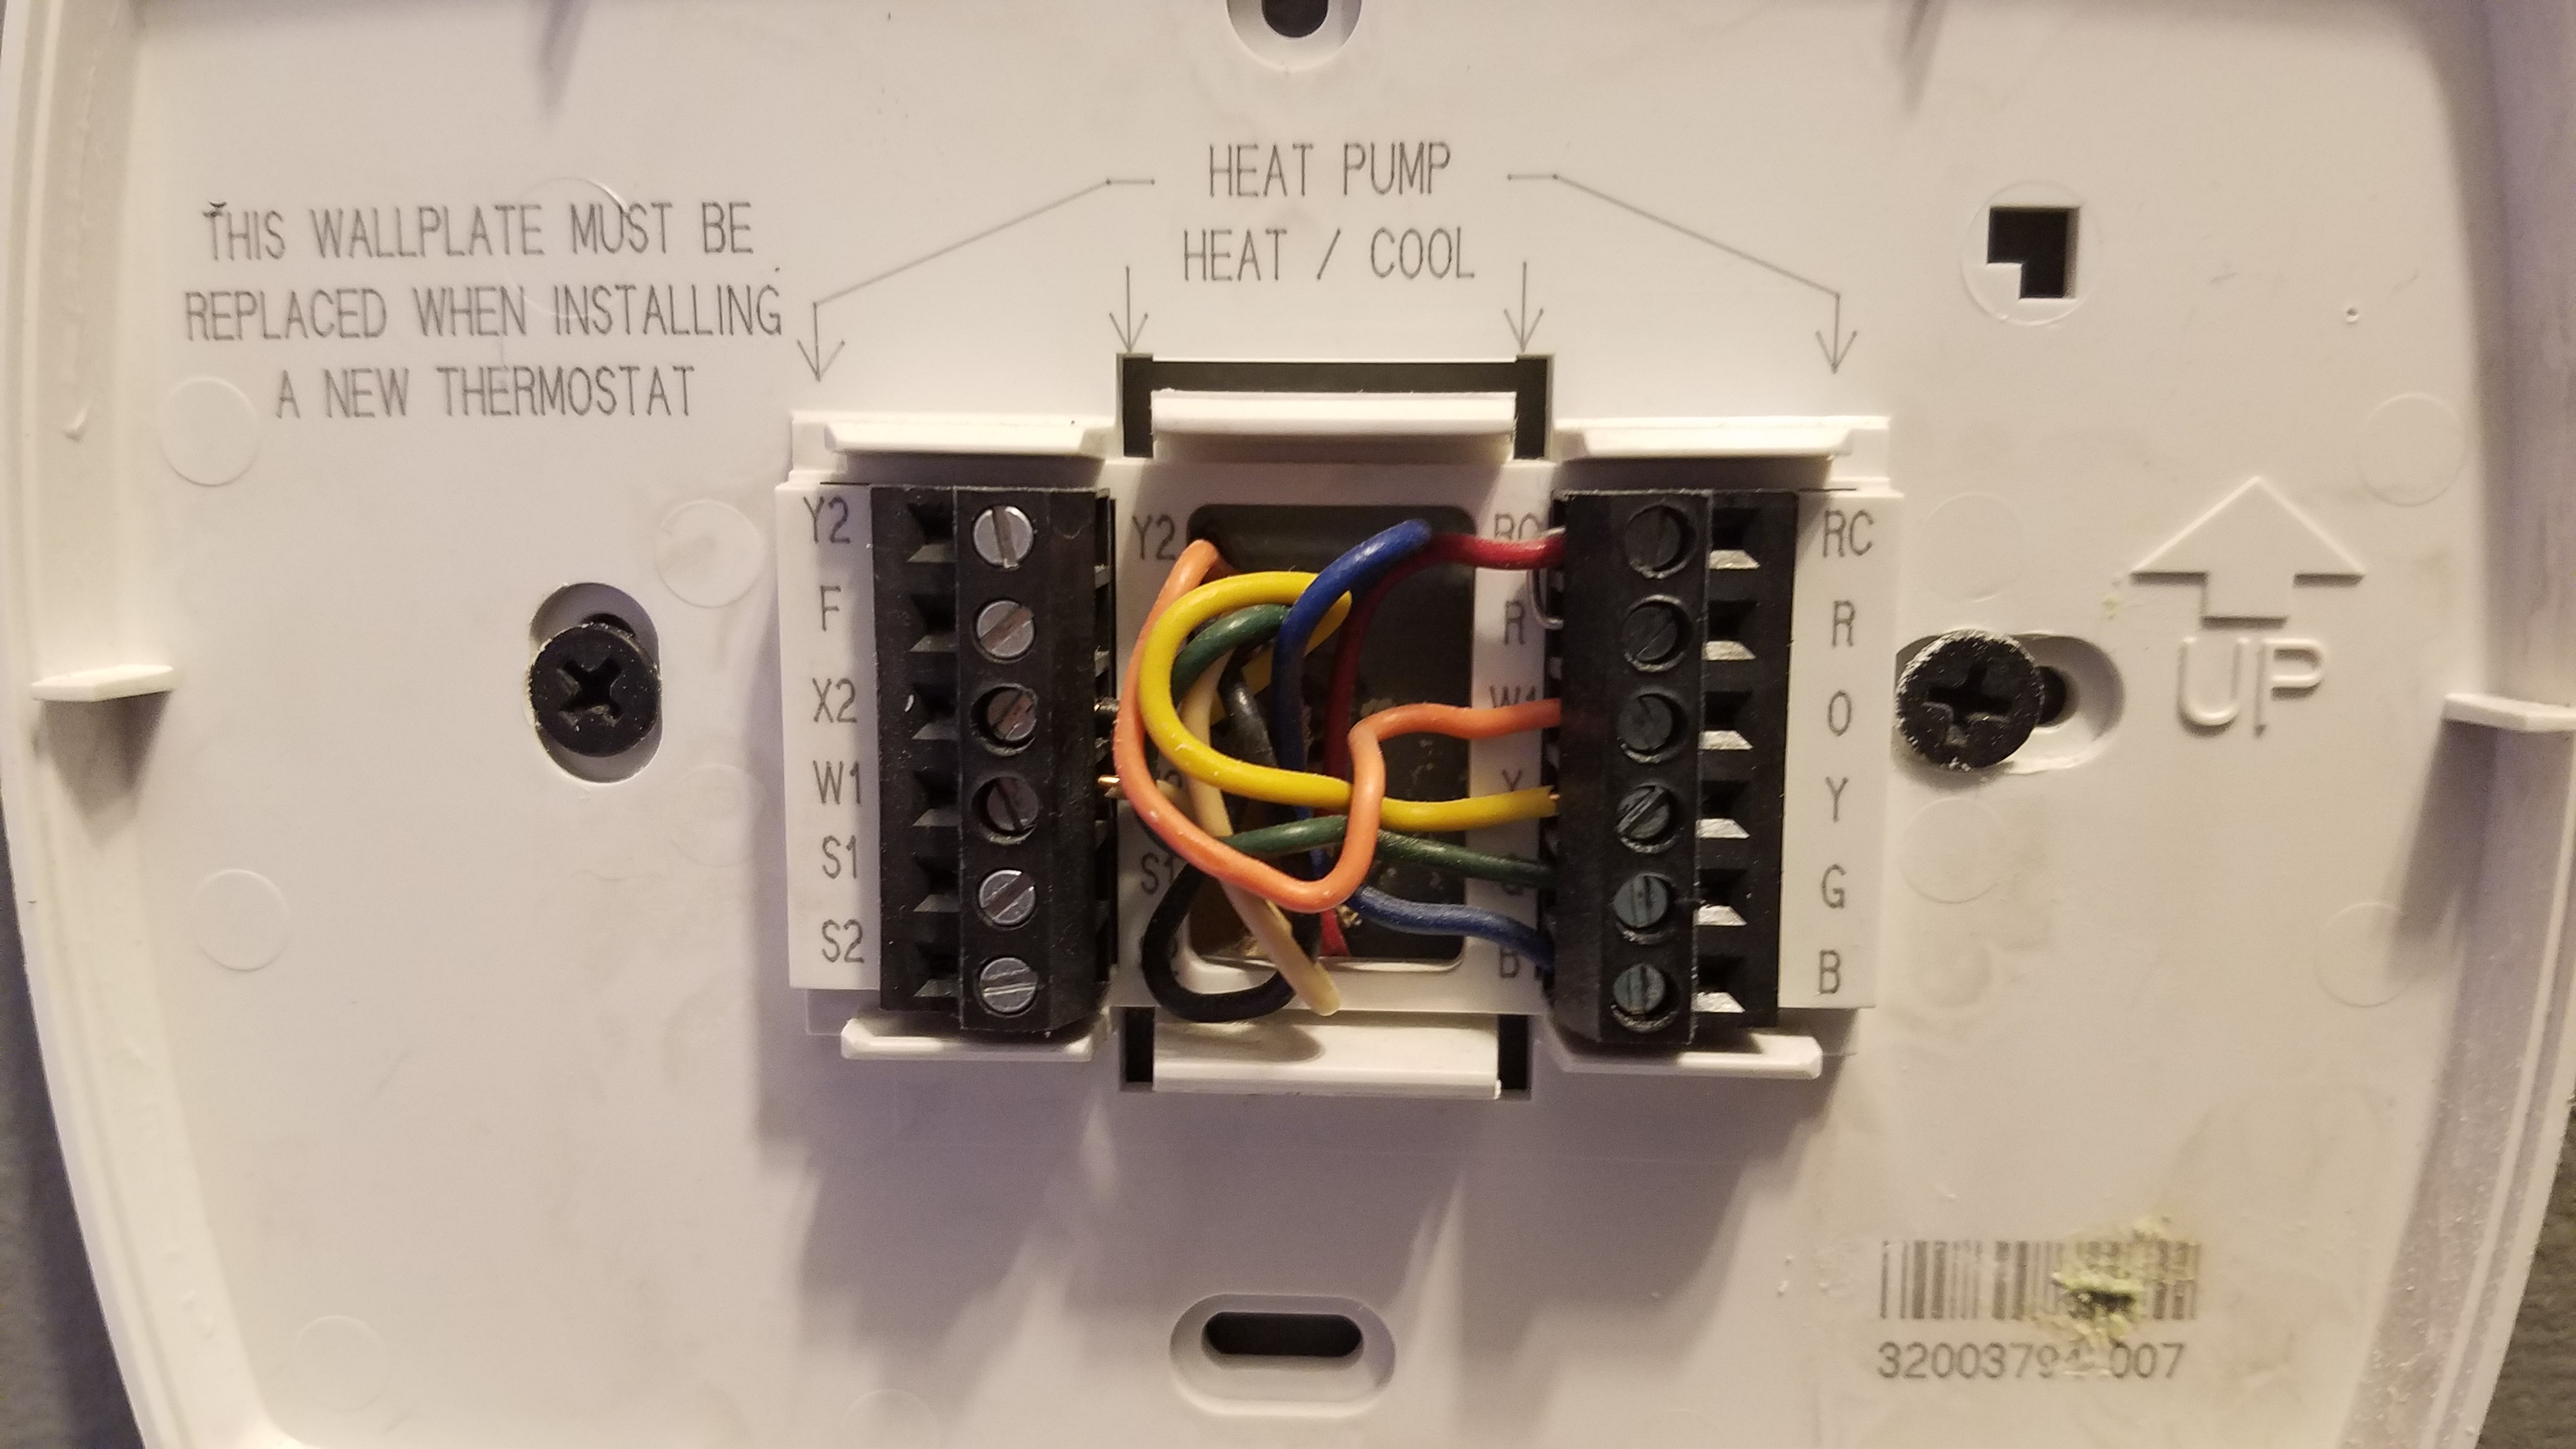 medium resolution of nest thermostat and heat pumps w aux chris tierney rh christierney com goodman heat pump thermostat wiring diagram goodman air handler wiring diagrams